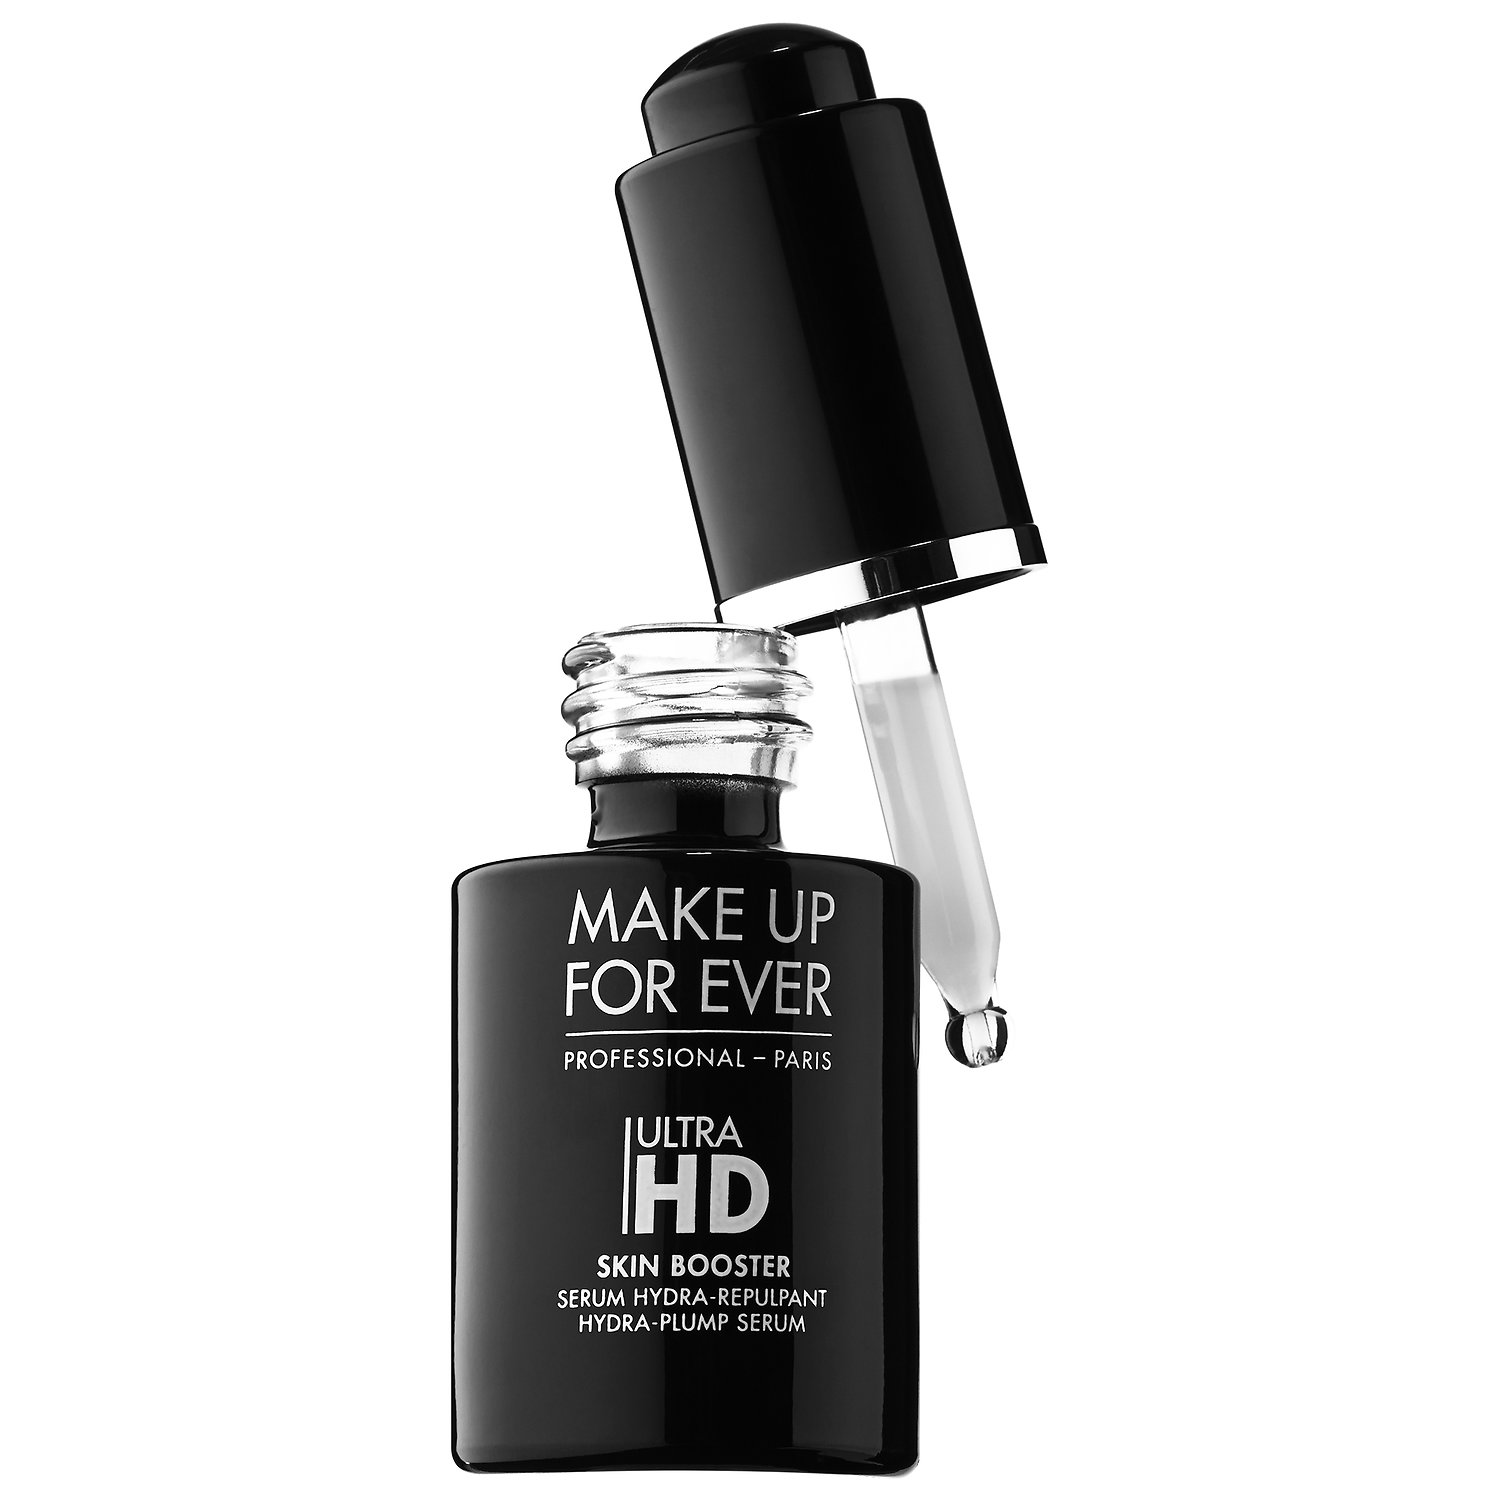 Make Up For Ever Ultra HD Skin Booster Open